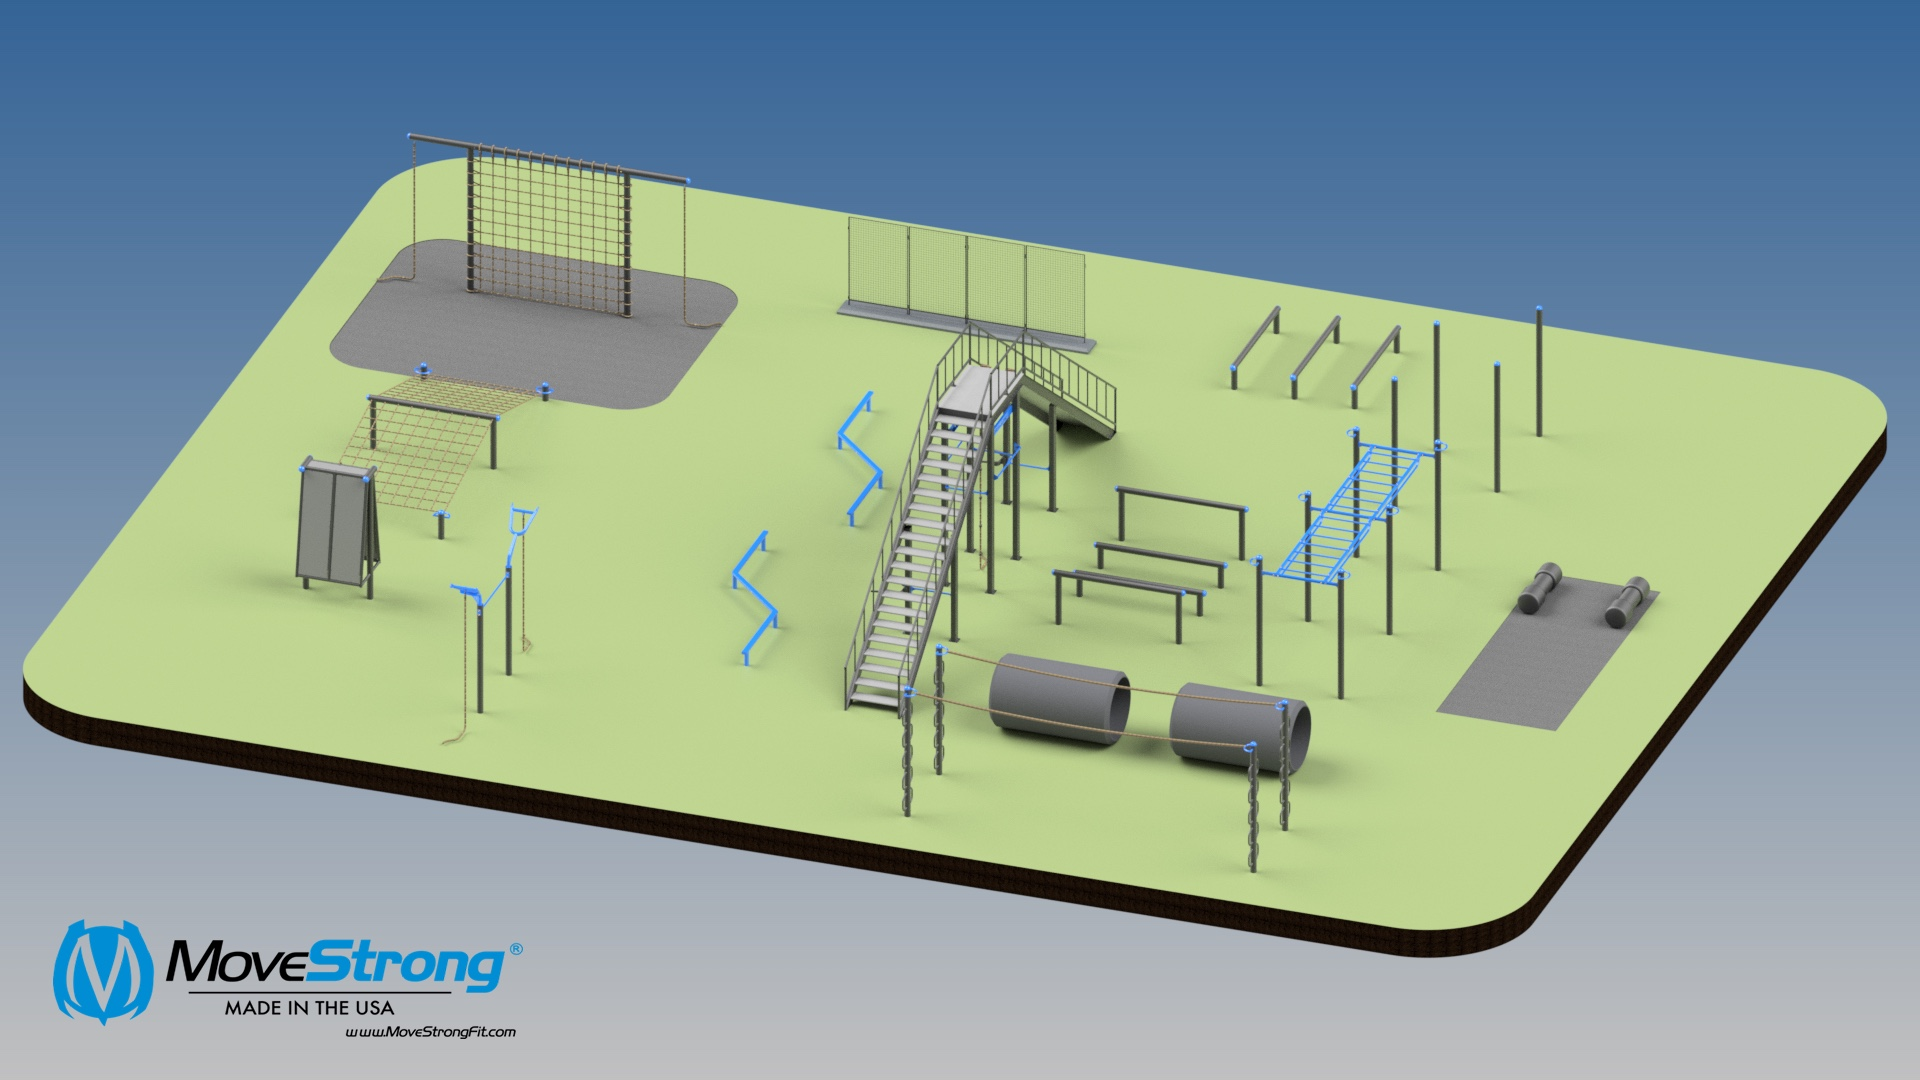 MoveStrong design and layout for Outdoor Obstacle Course